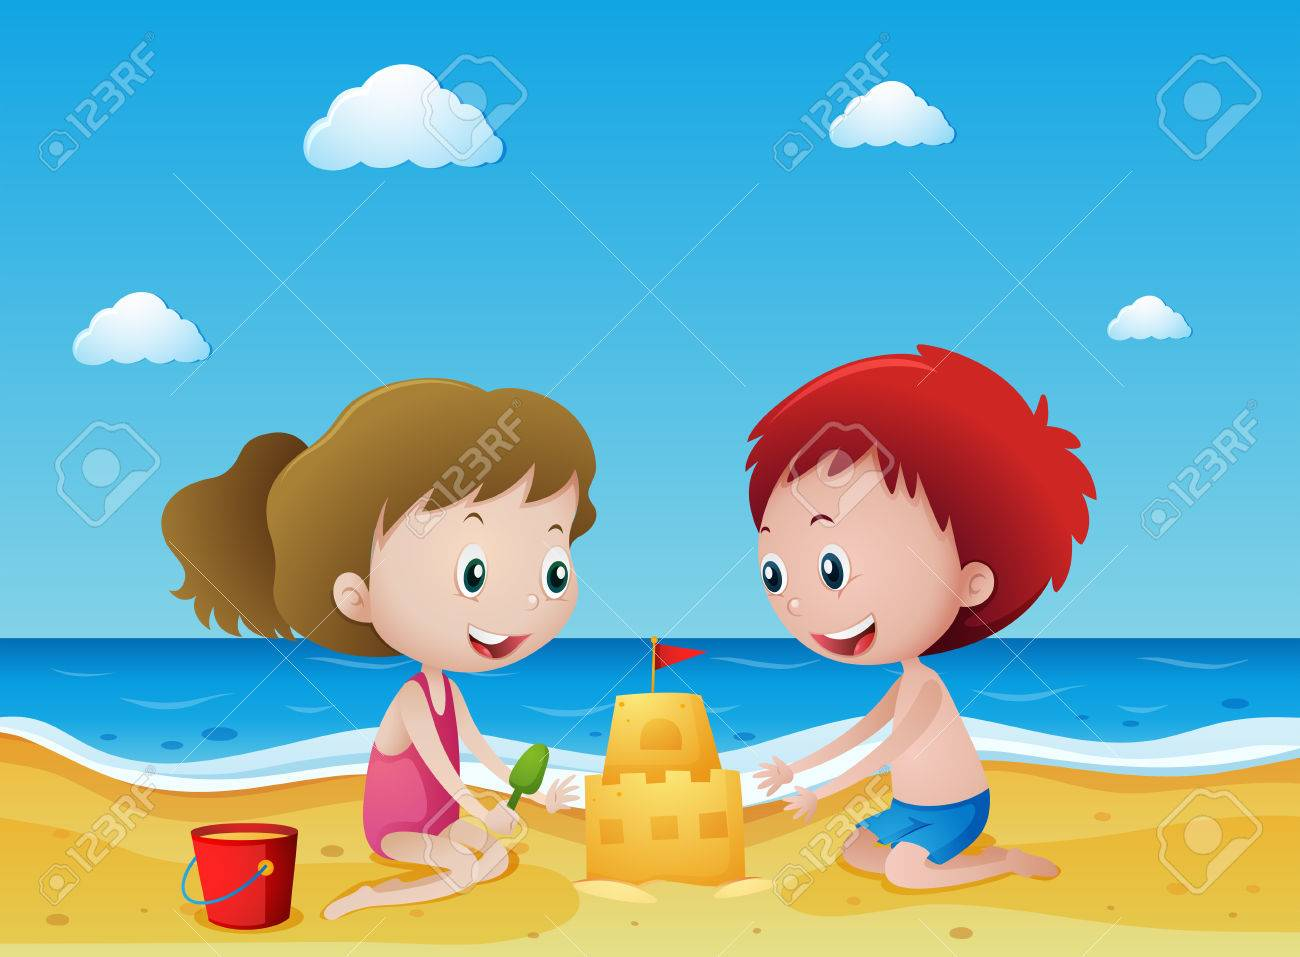 Kids playing sand on the beach illustration.